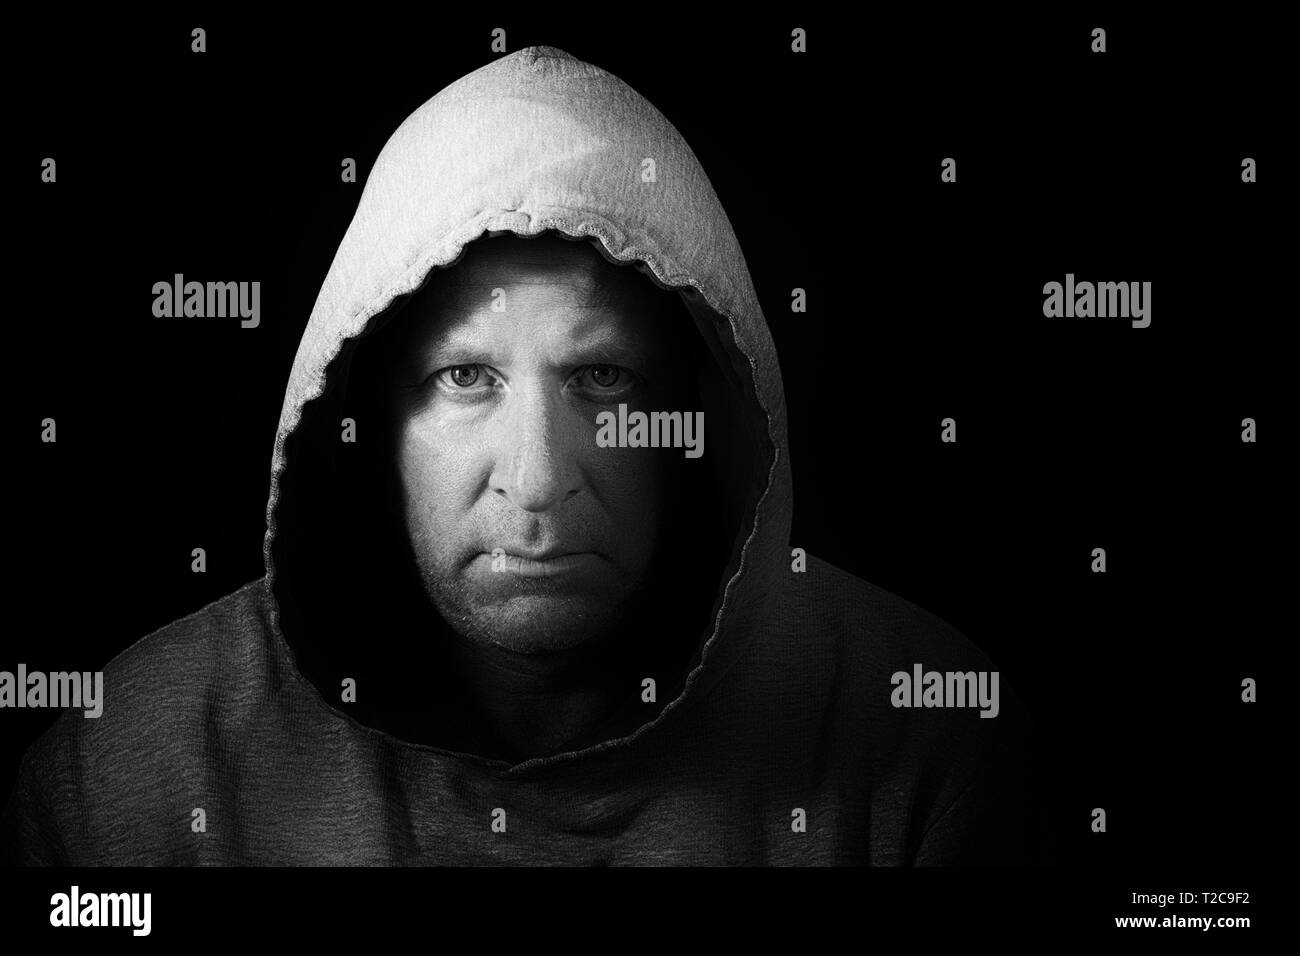 Dark and moody portrait of man in hoodie. Black and White image. - Stock Image